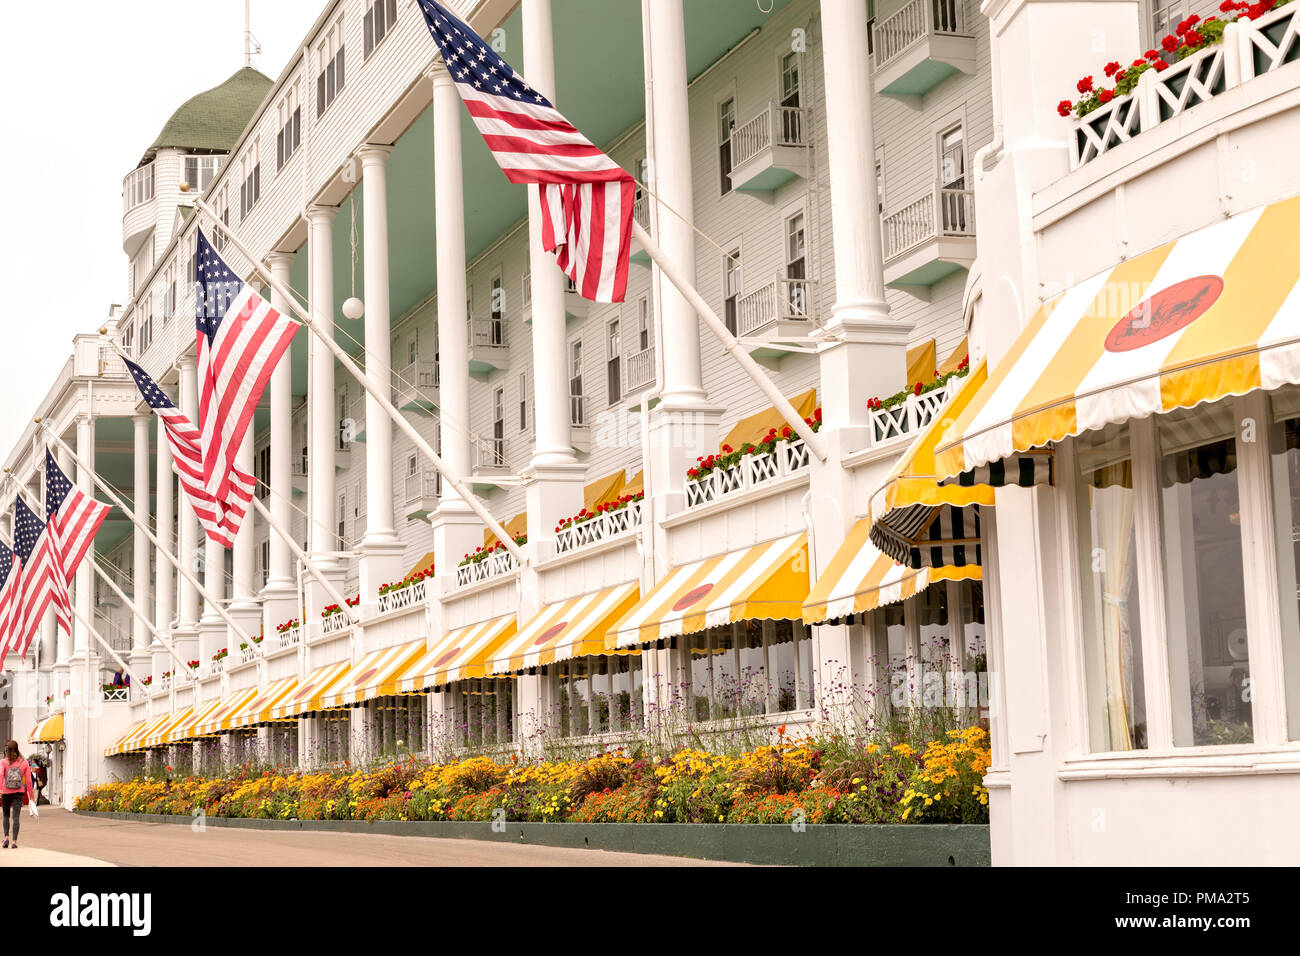 Facade of the Grand Hotel, on Mackinac Island. Popular vacation destination in the state of Michigan, USA. It has the world's largest porch. Stock Photo